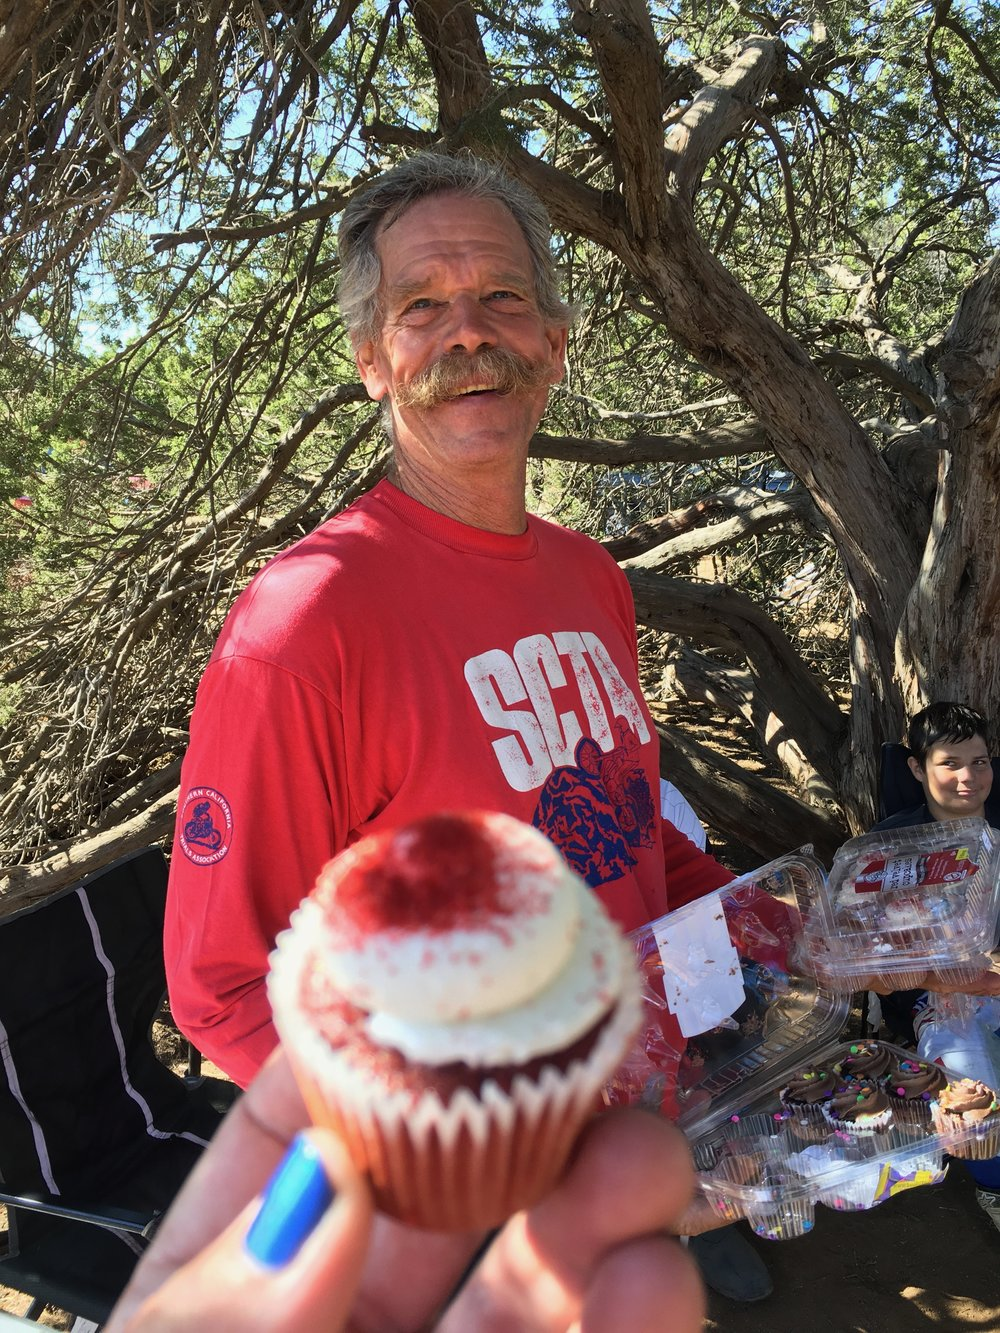 Trials AND Cupcakes? What a wonderful world. Clyde looks on in merriment.